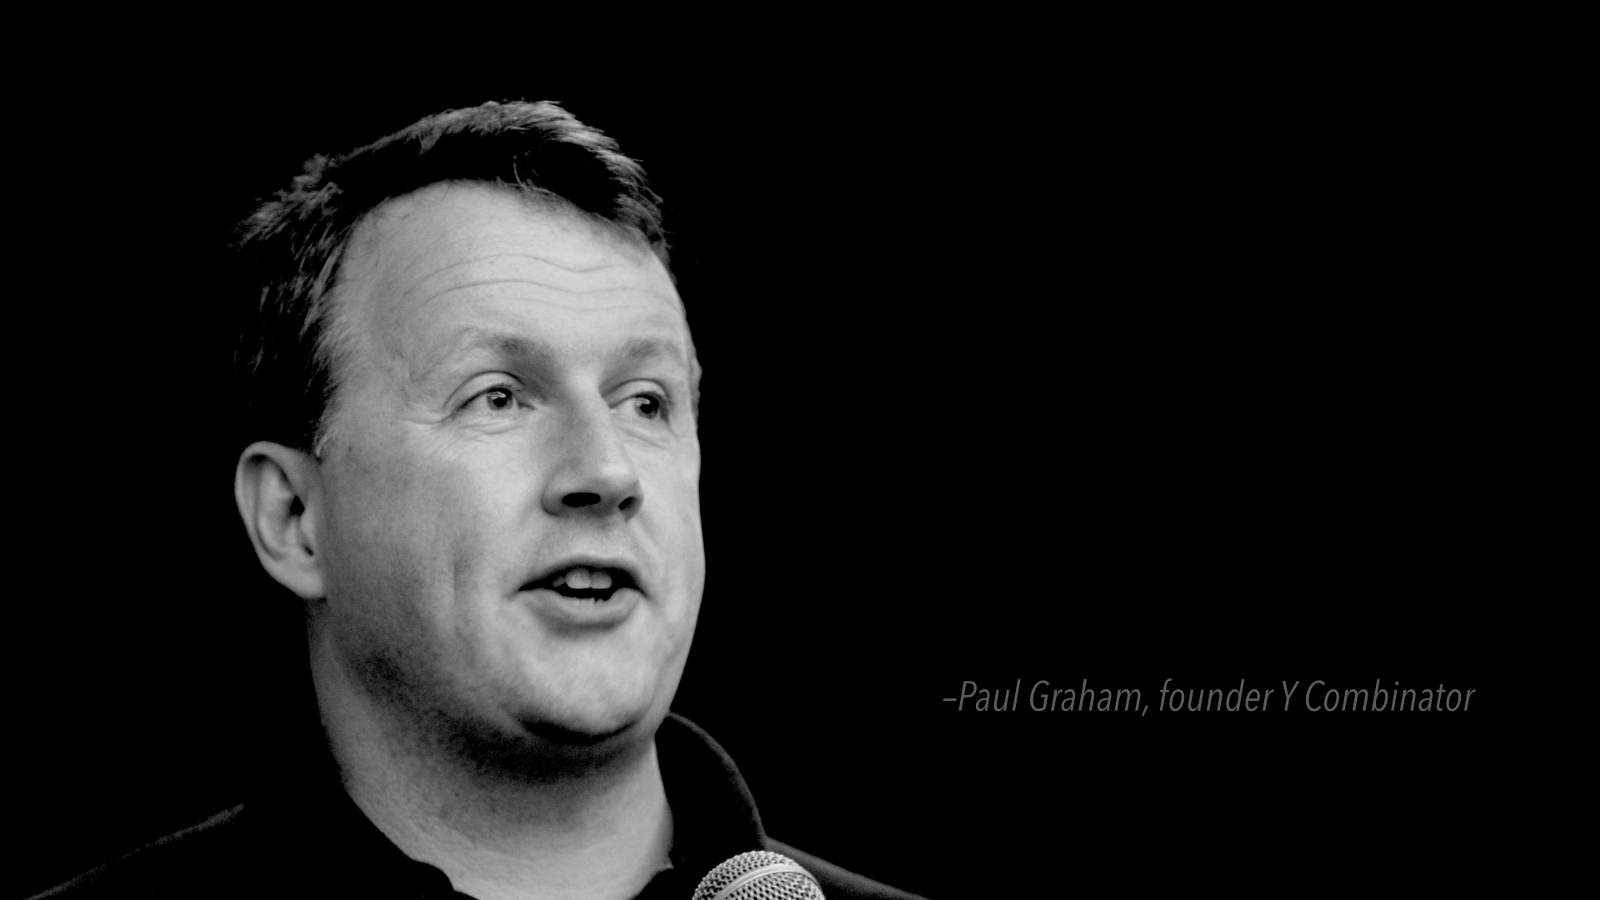 paul graham lisp essays Pg is published as an open source project and not affiliated with paul graham in any wayit just happens that i like his writings and also my kindle paul graham is a programmer, venture capitalist, and essayist he is known for his work on lisp, for cofounding.